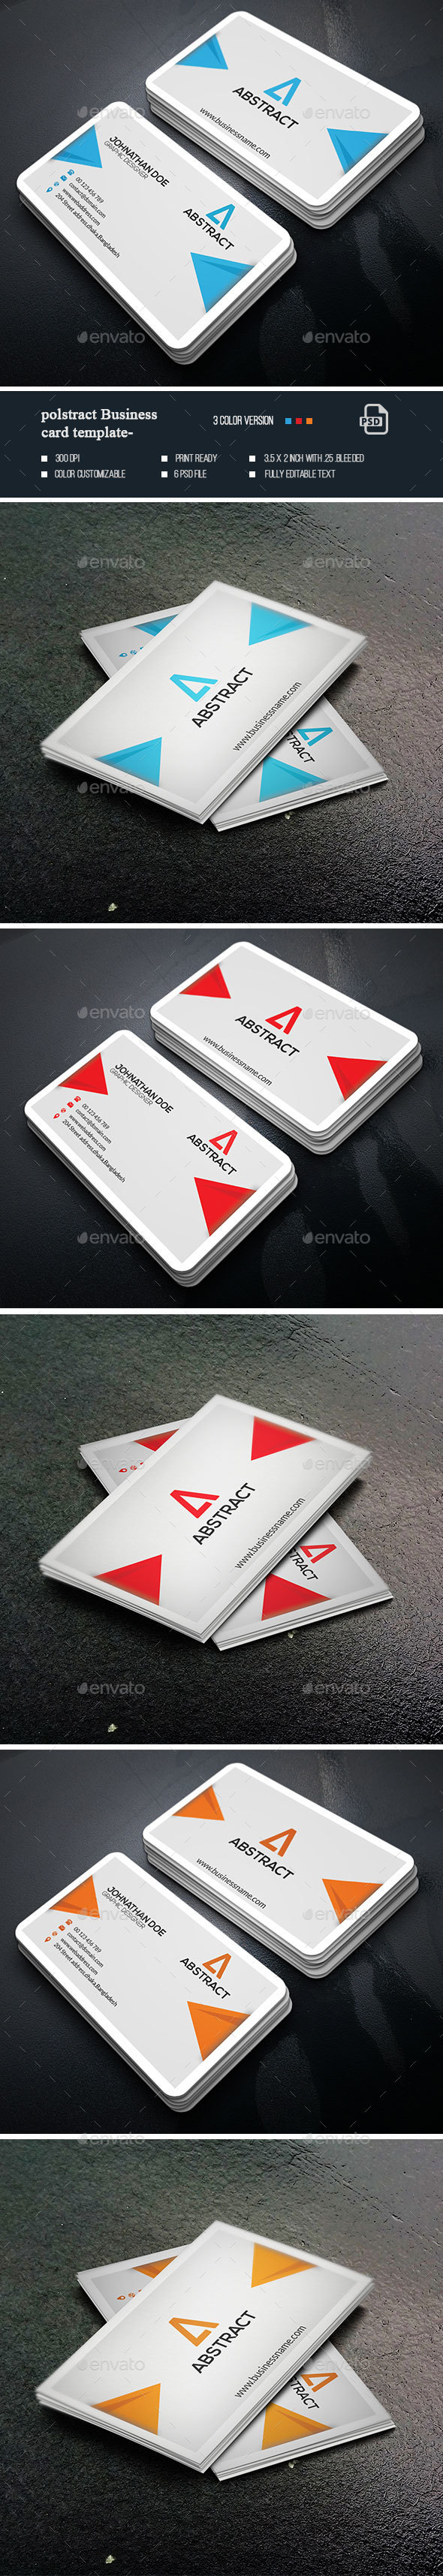 Polstract Business Card - Business Cards Print Templates